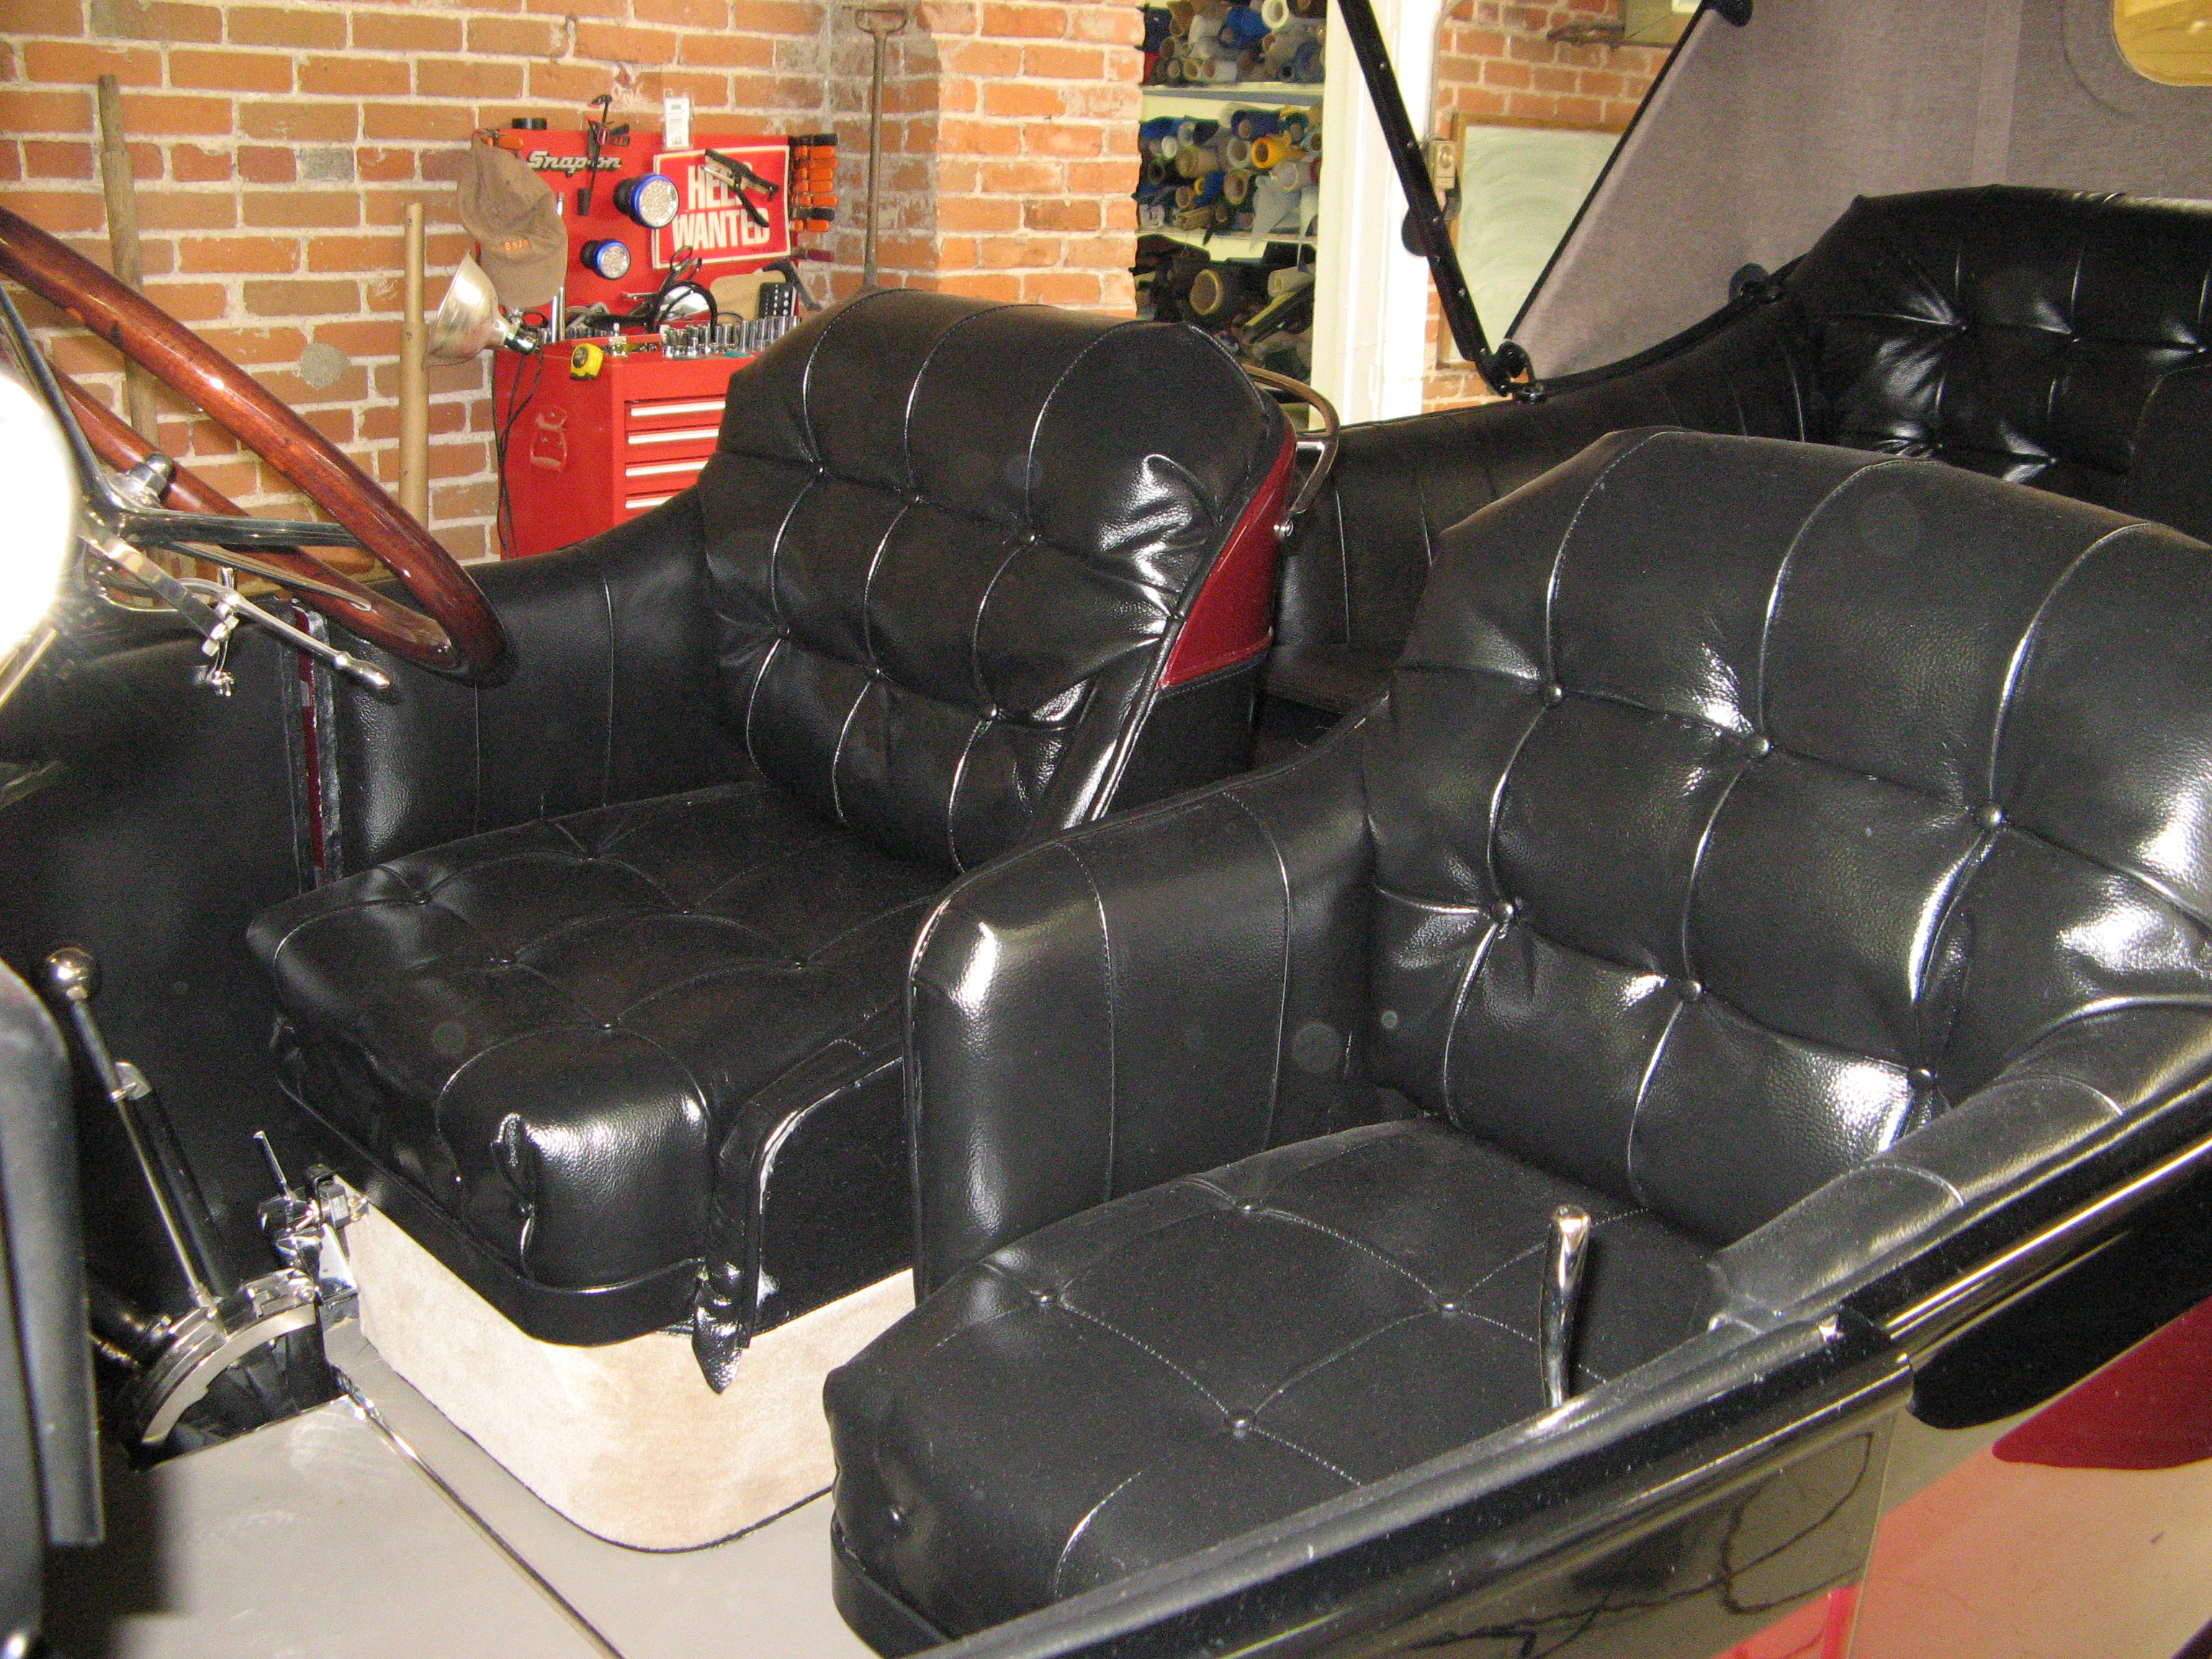 Turn To Andrewu0027s Upholstery In Boise For All Your Automotive Upholstery  Repair Or Replacement Needs. Youu0027ll Enjoy The Added Comfort, Functionality,  ...